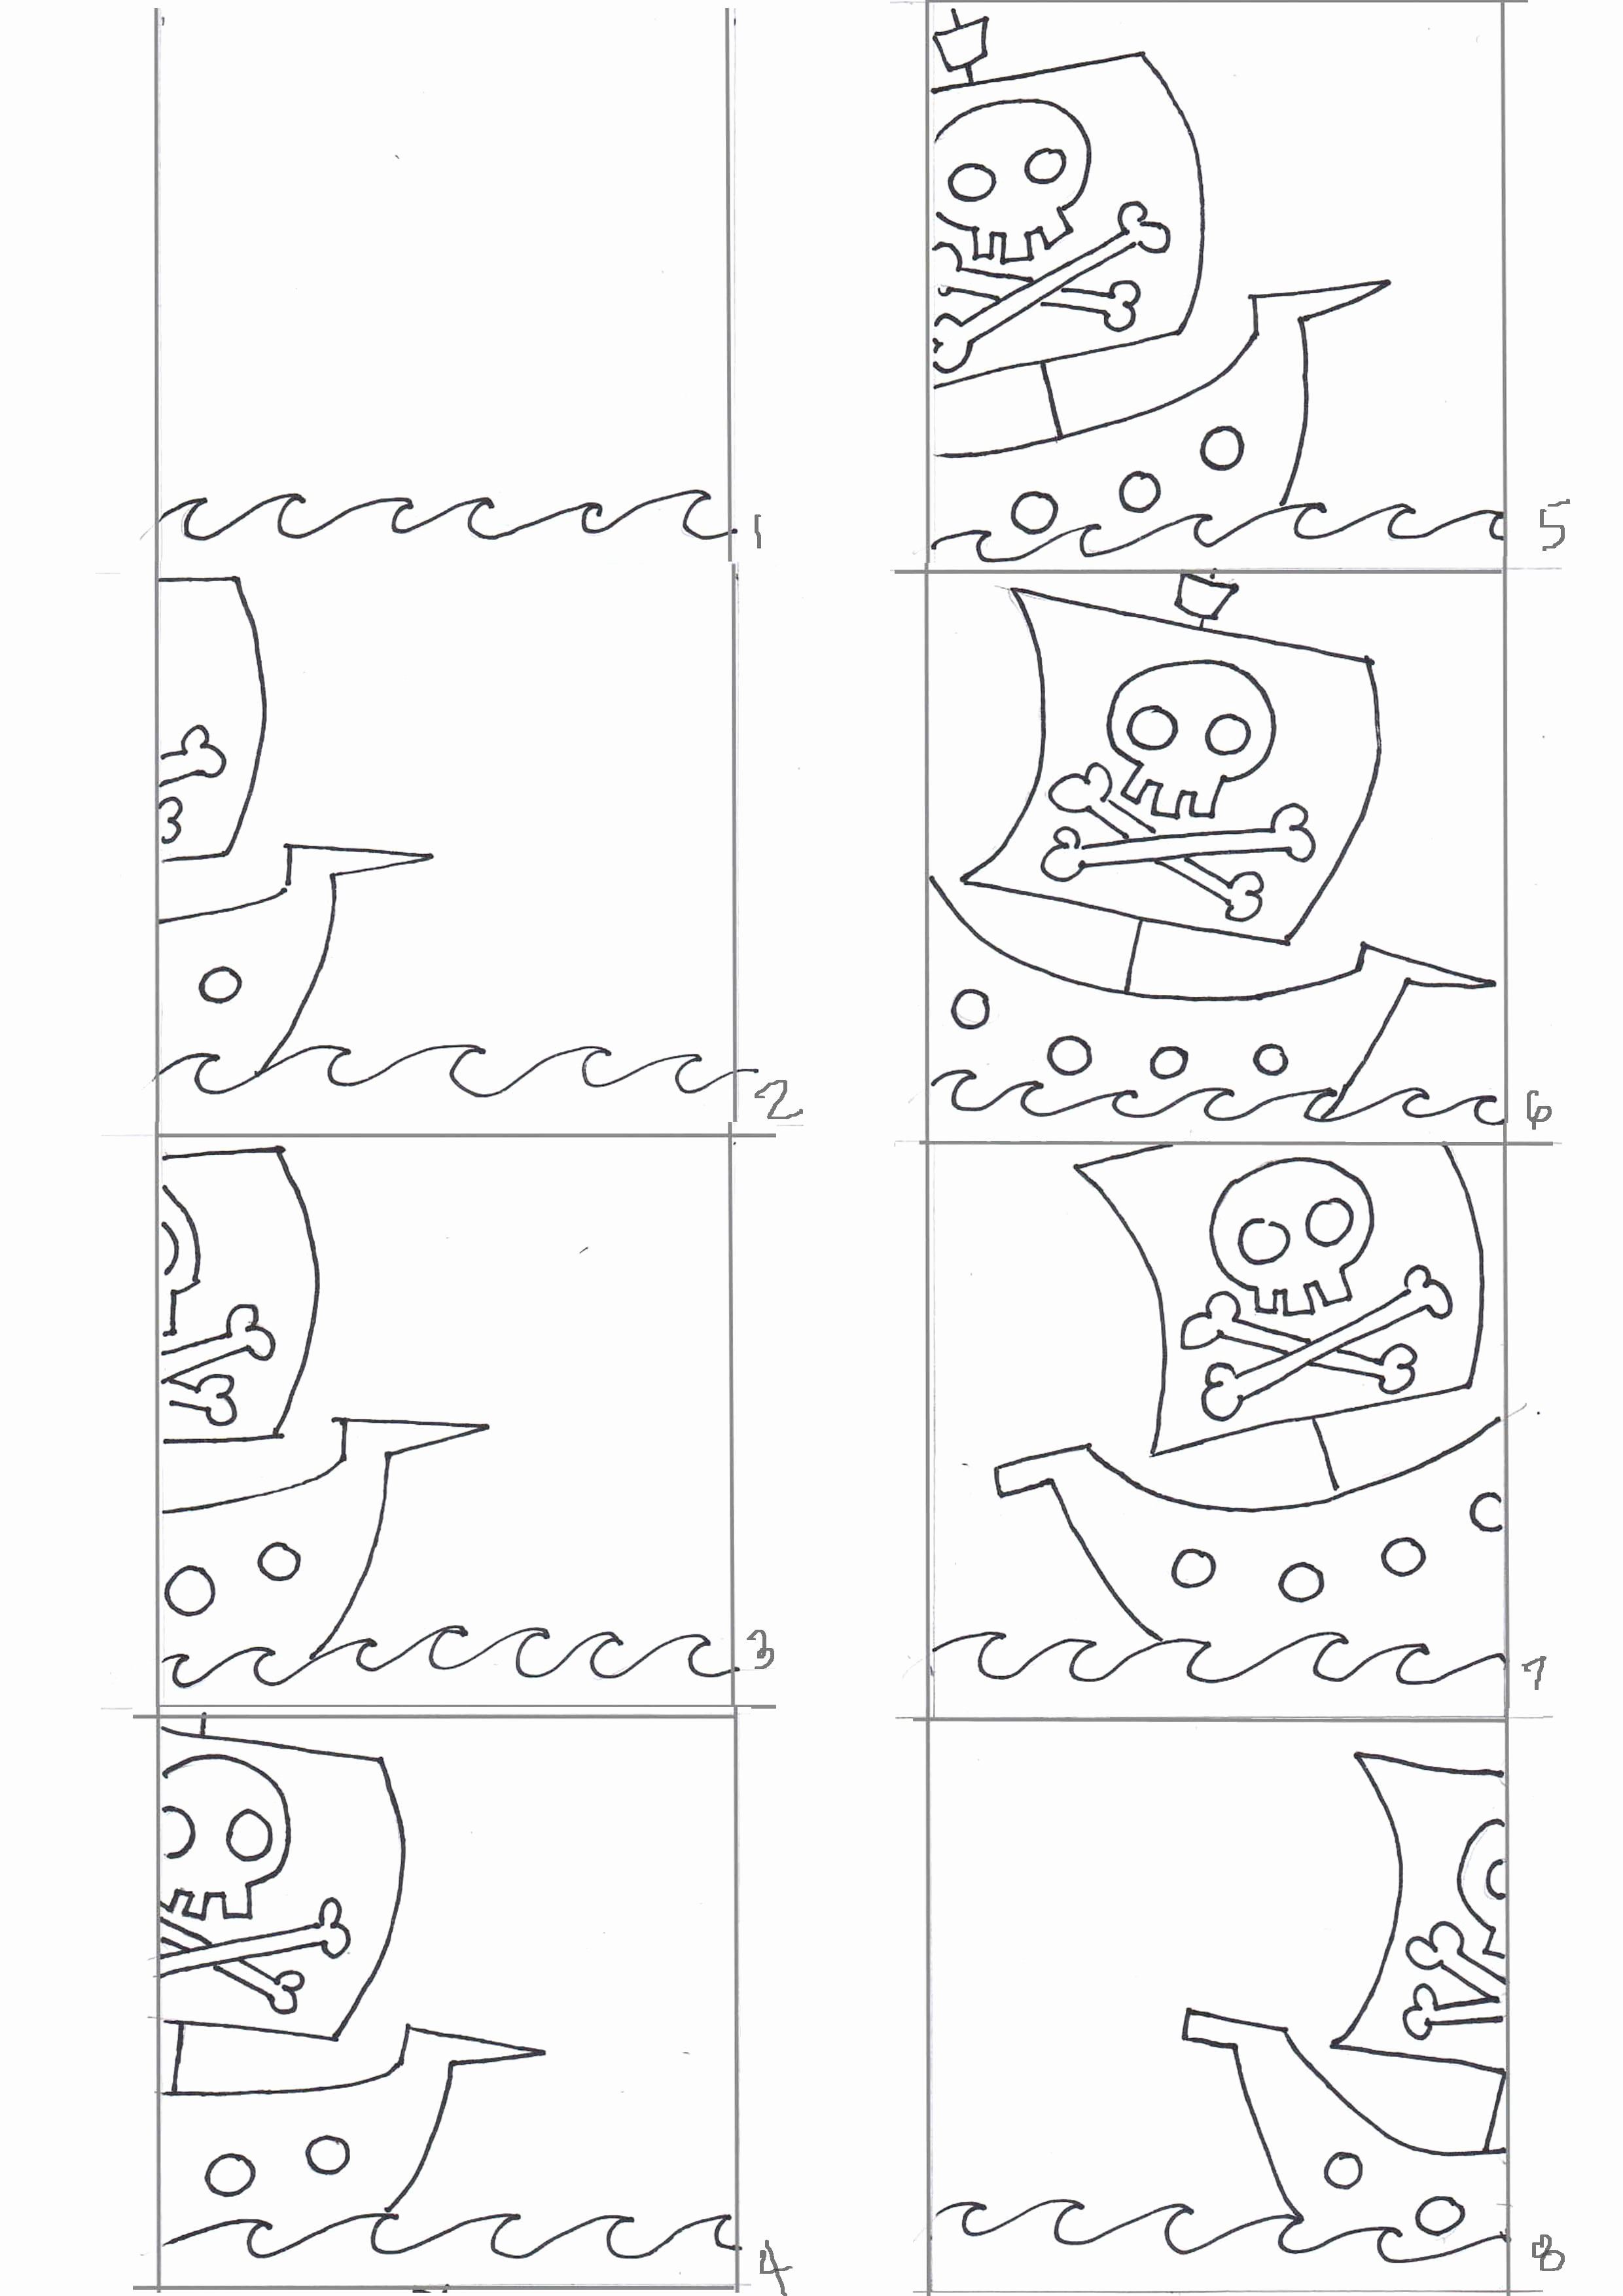 Printable Flip Book Template New Animation Flip Book Workshop